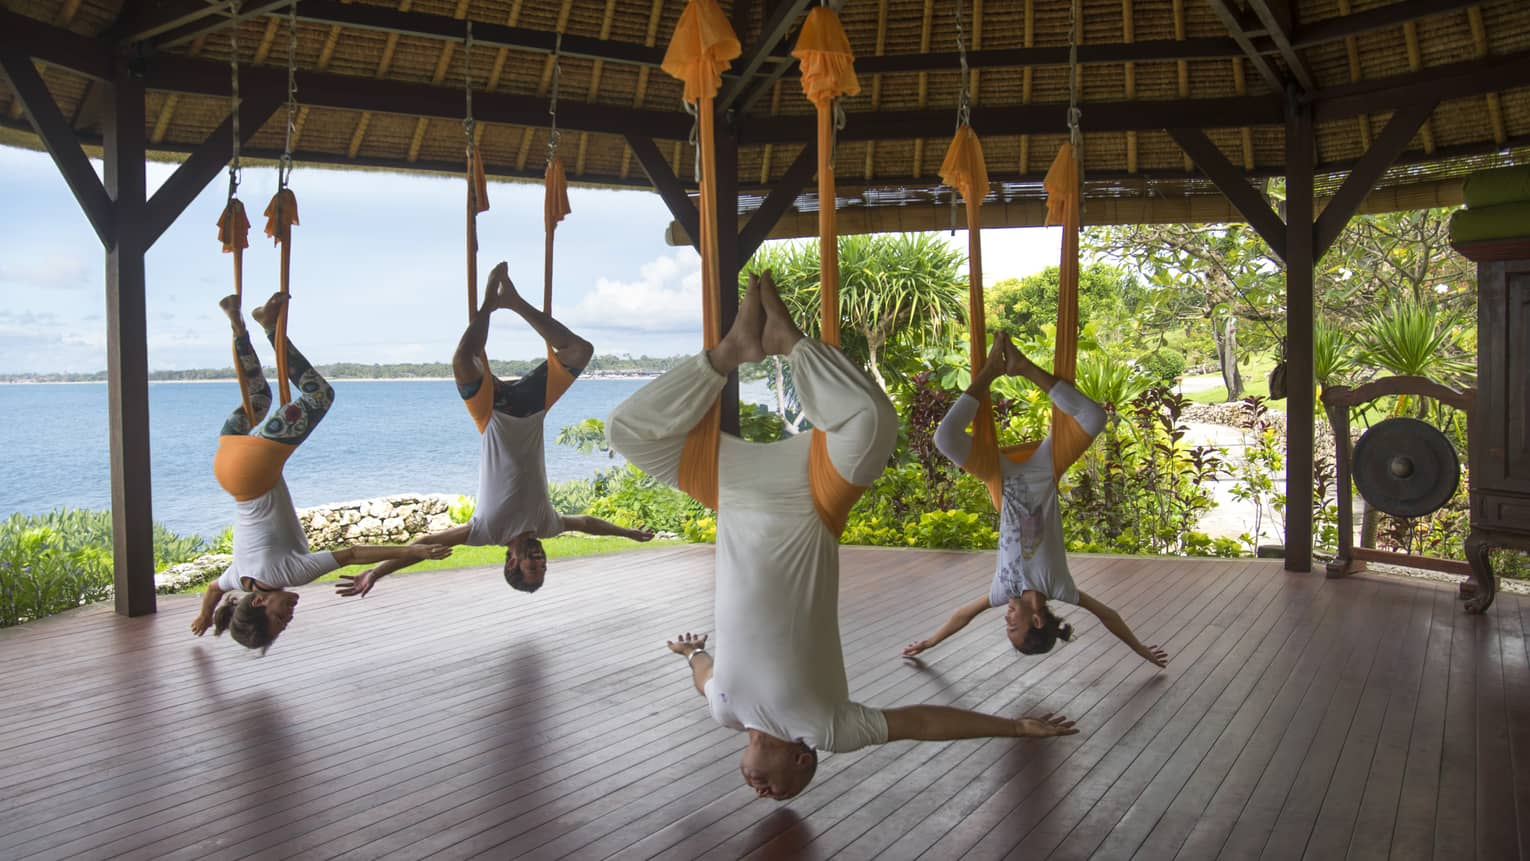 Guests participating in rope yoga, stretching as they are supported by the ceiling of an outdoor pavilion